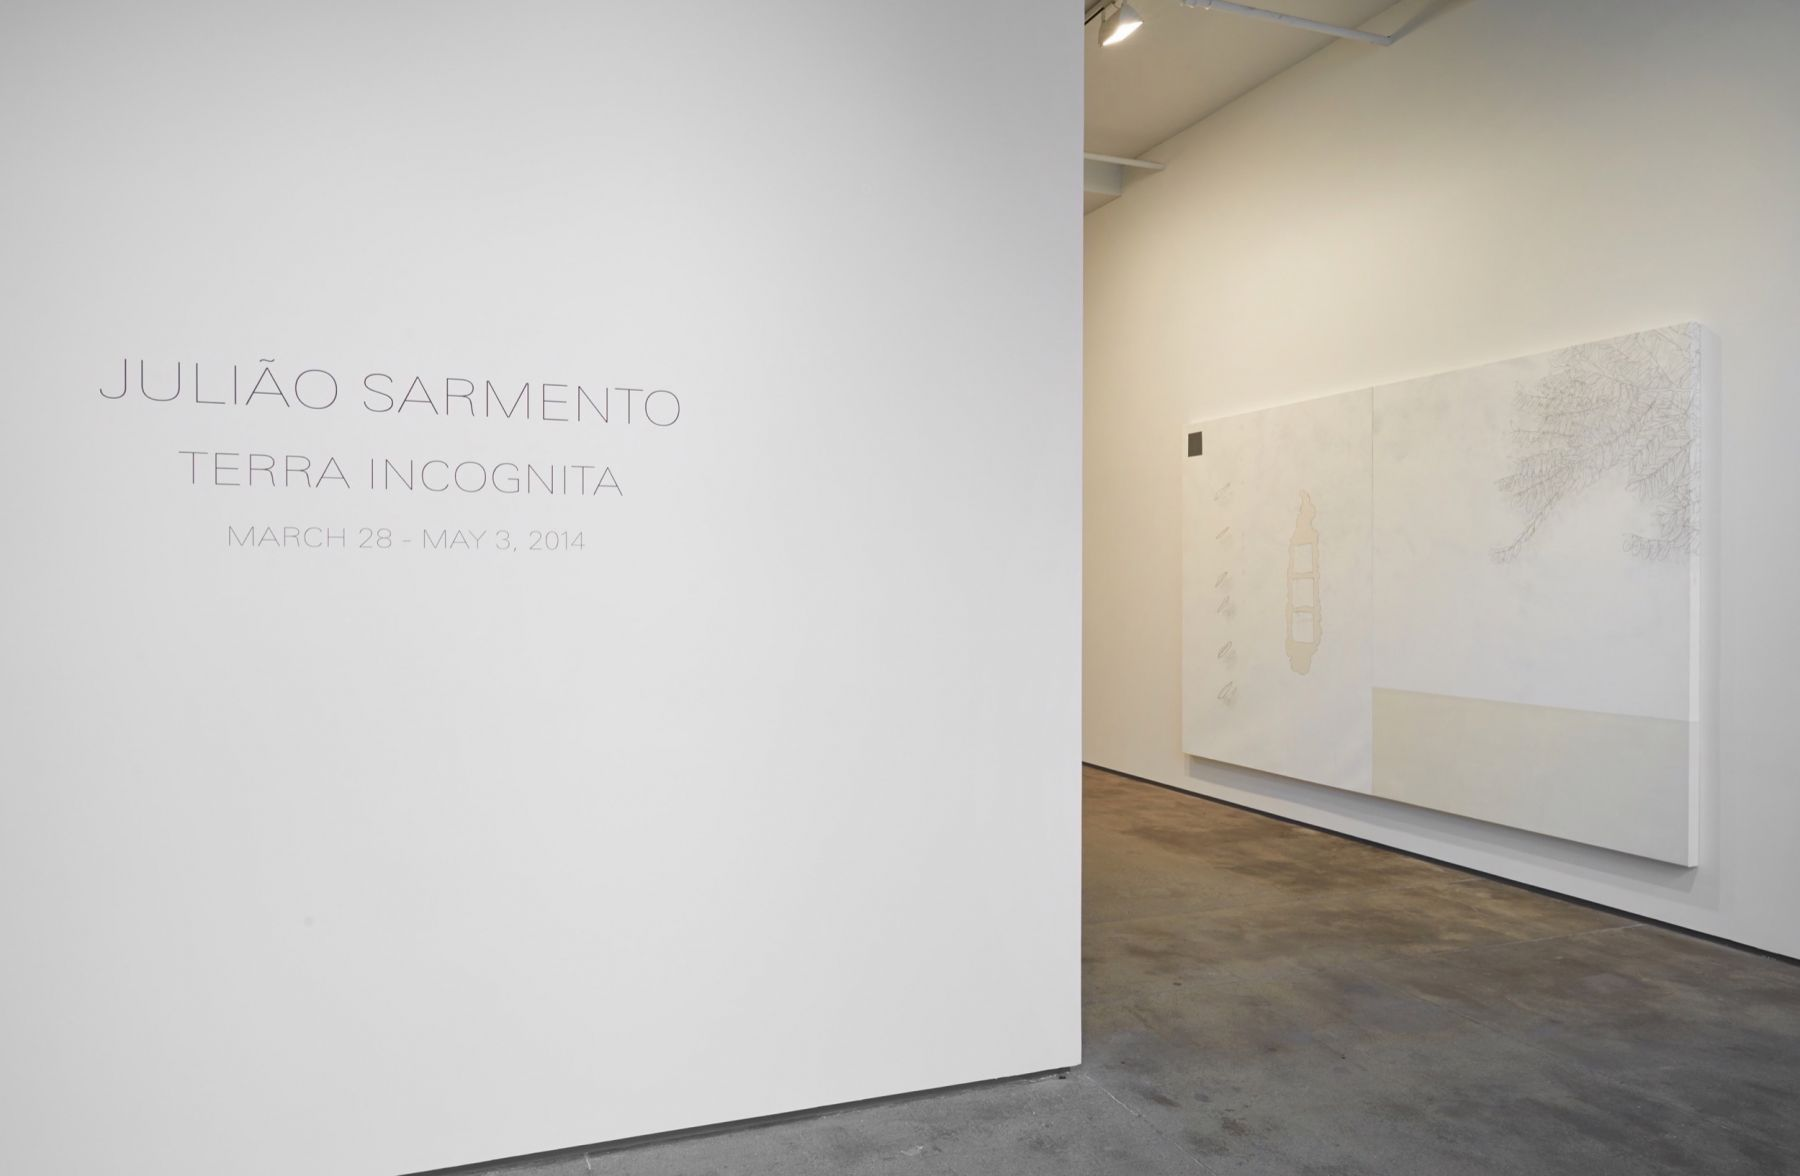 Juliao Sarmento Sean Kelly Gallery